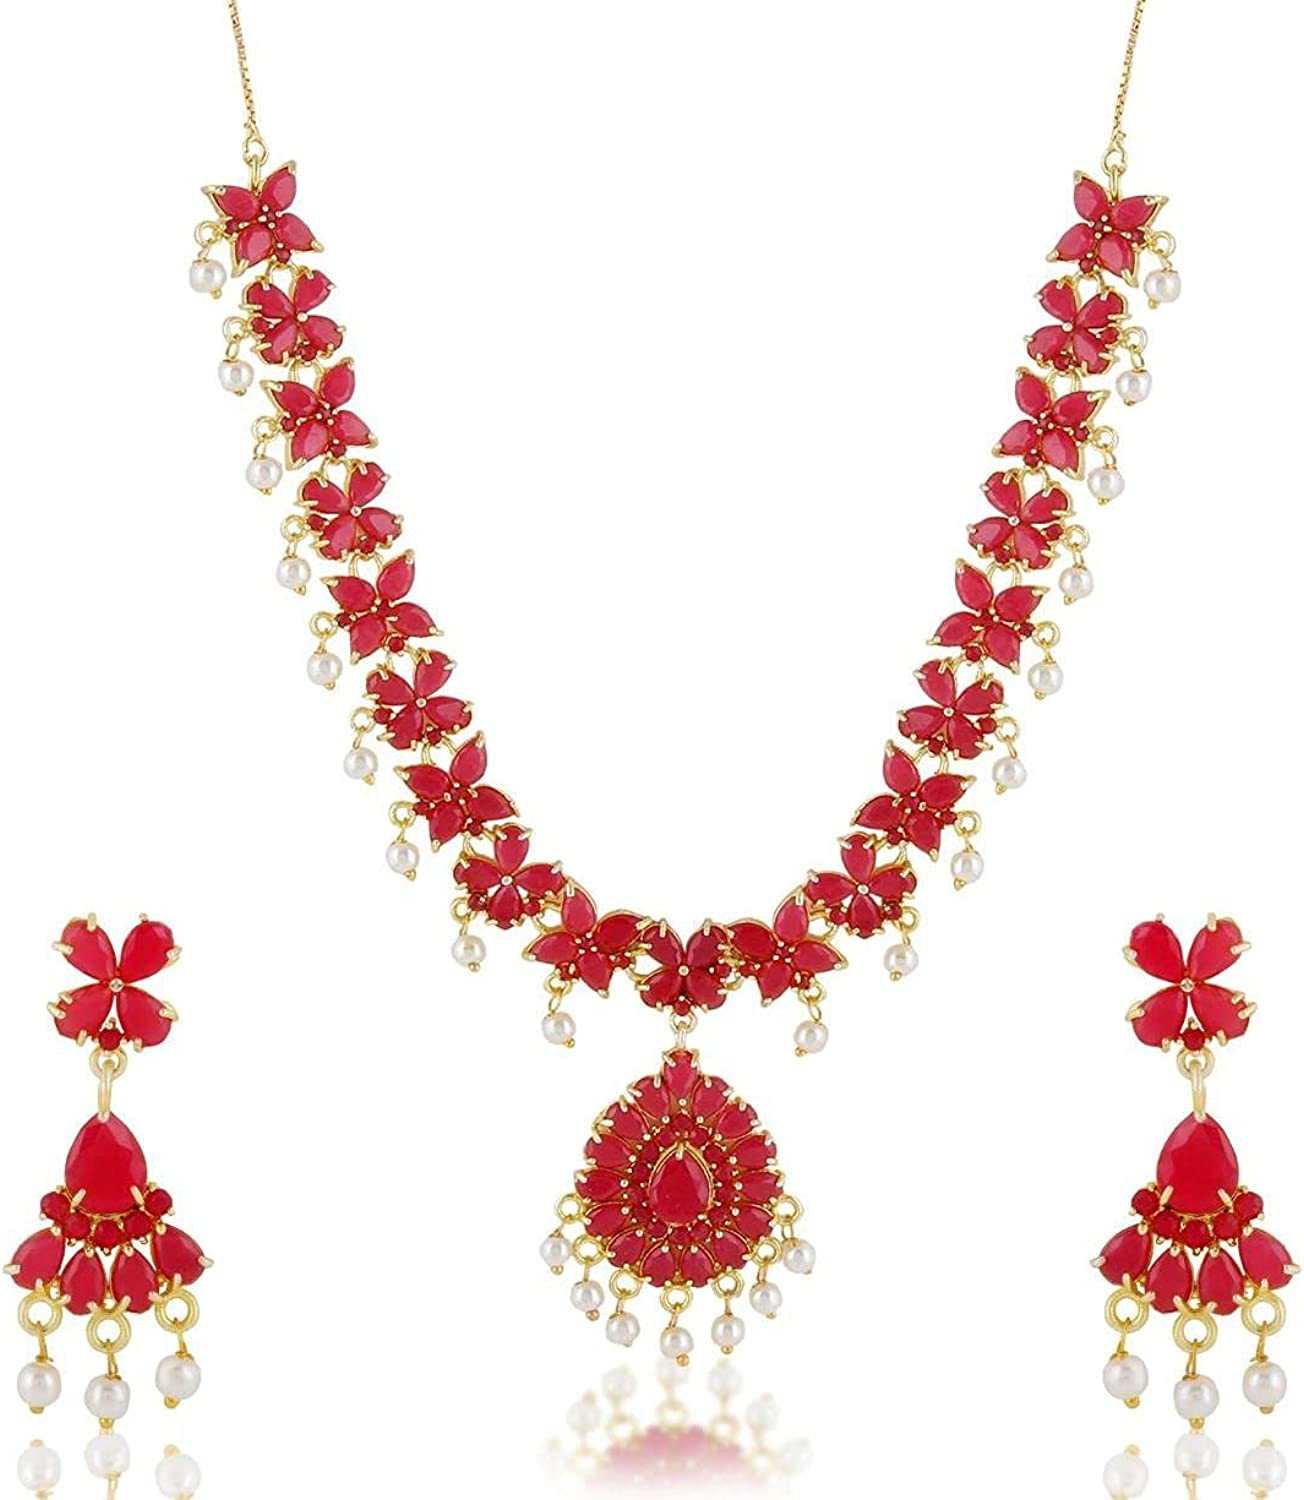 Efulgenz Indian Bollywood Gold Plated Pink Crystal Rhinestone Faux Pearl Choker Pendant Necklace Dangle Earring Jewelry Set